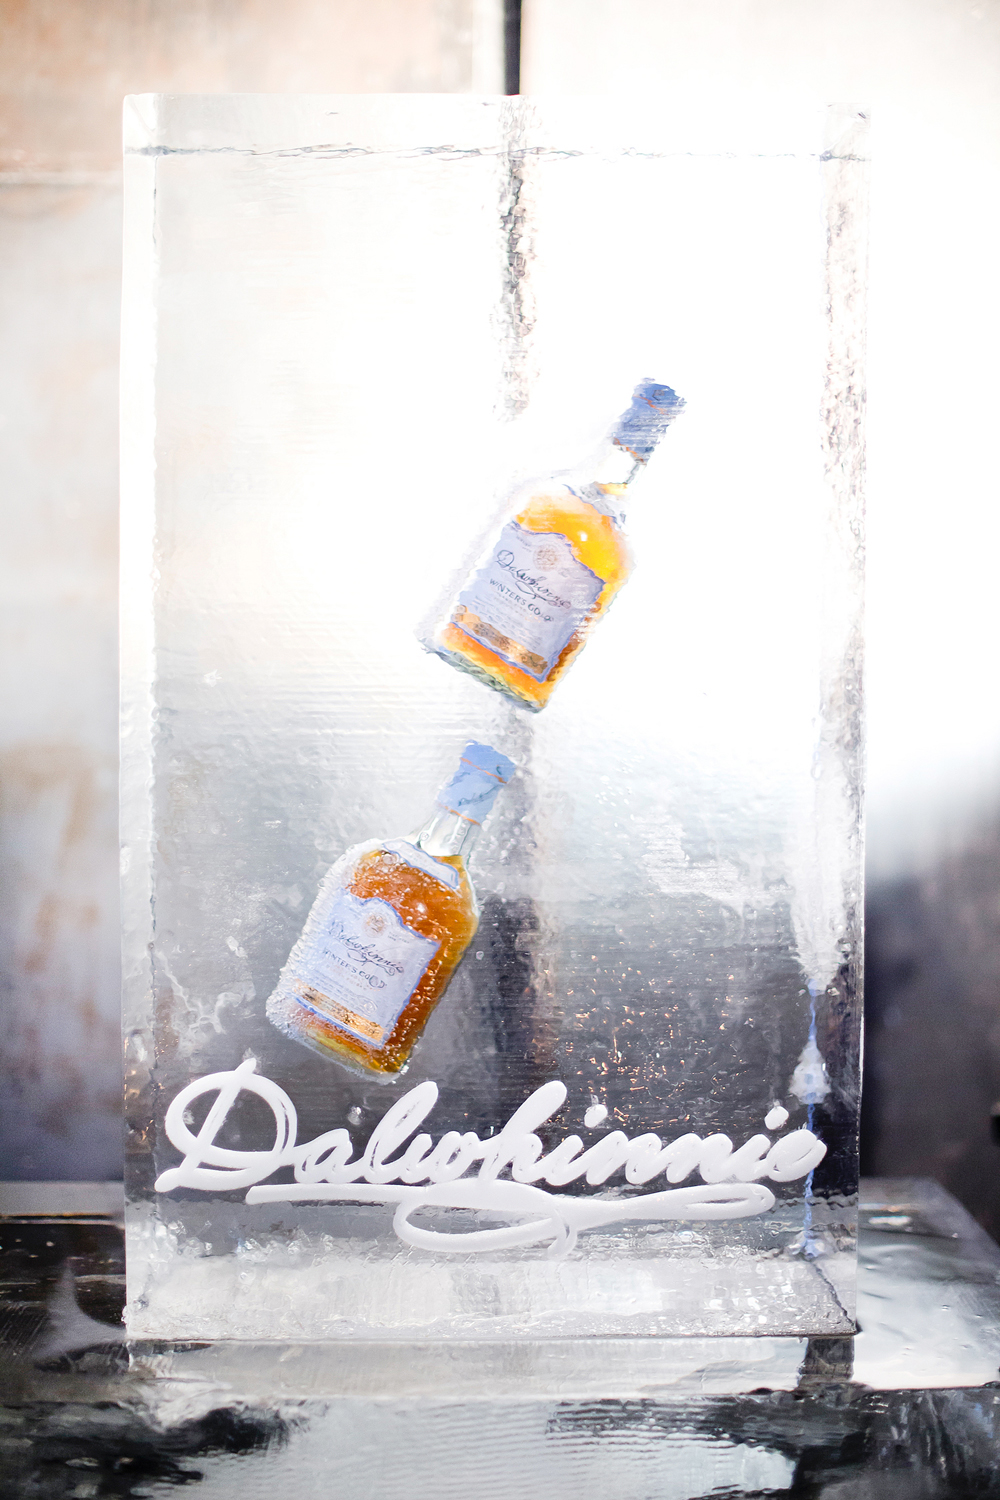 Dalwhinnie, whiskey tasting, Occam Deli catering, Scottish whiskey, drinks, The Golden Bun | München Modeblog, German Fashion Blog, Fashionblogger, new trends